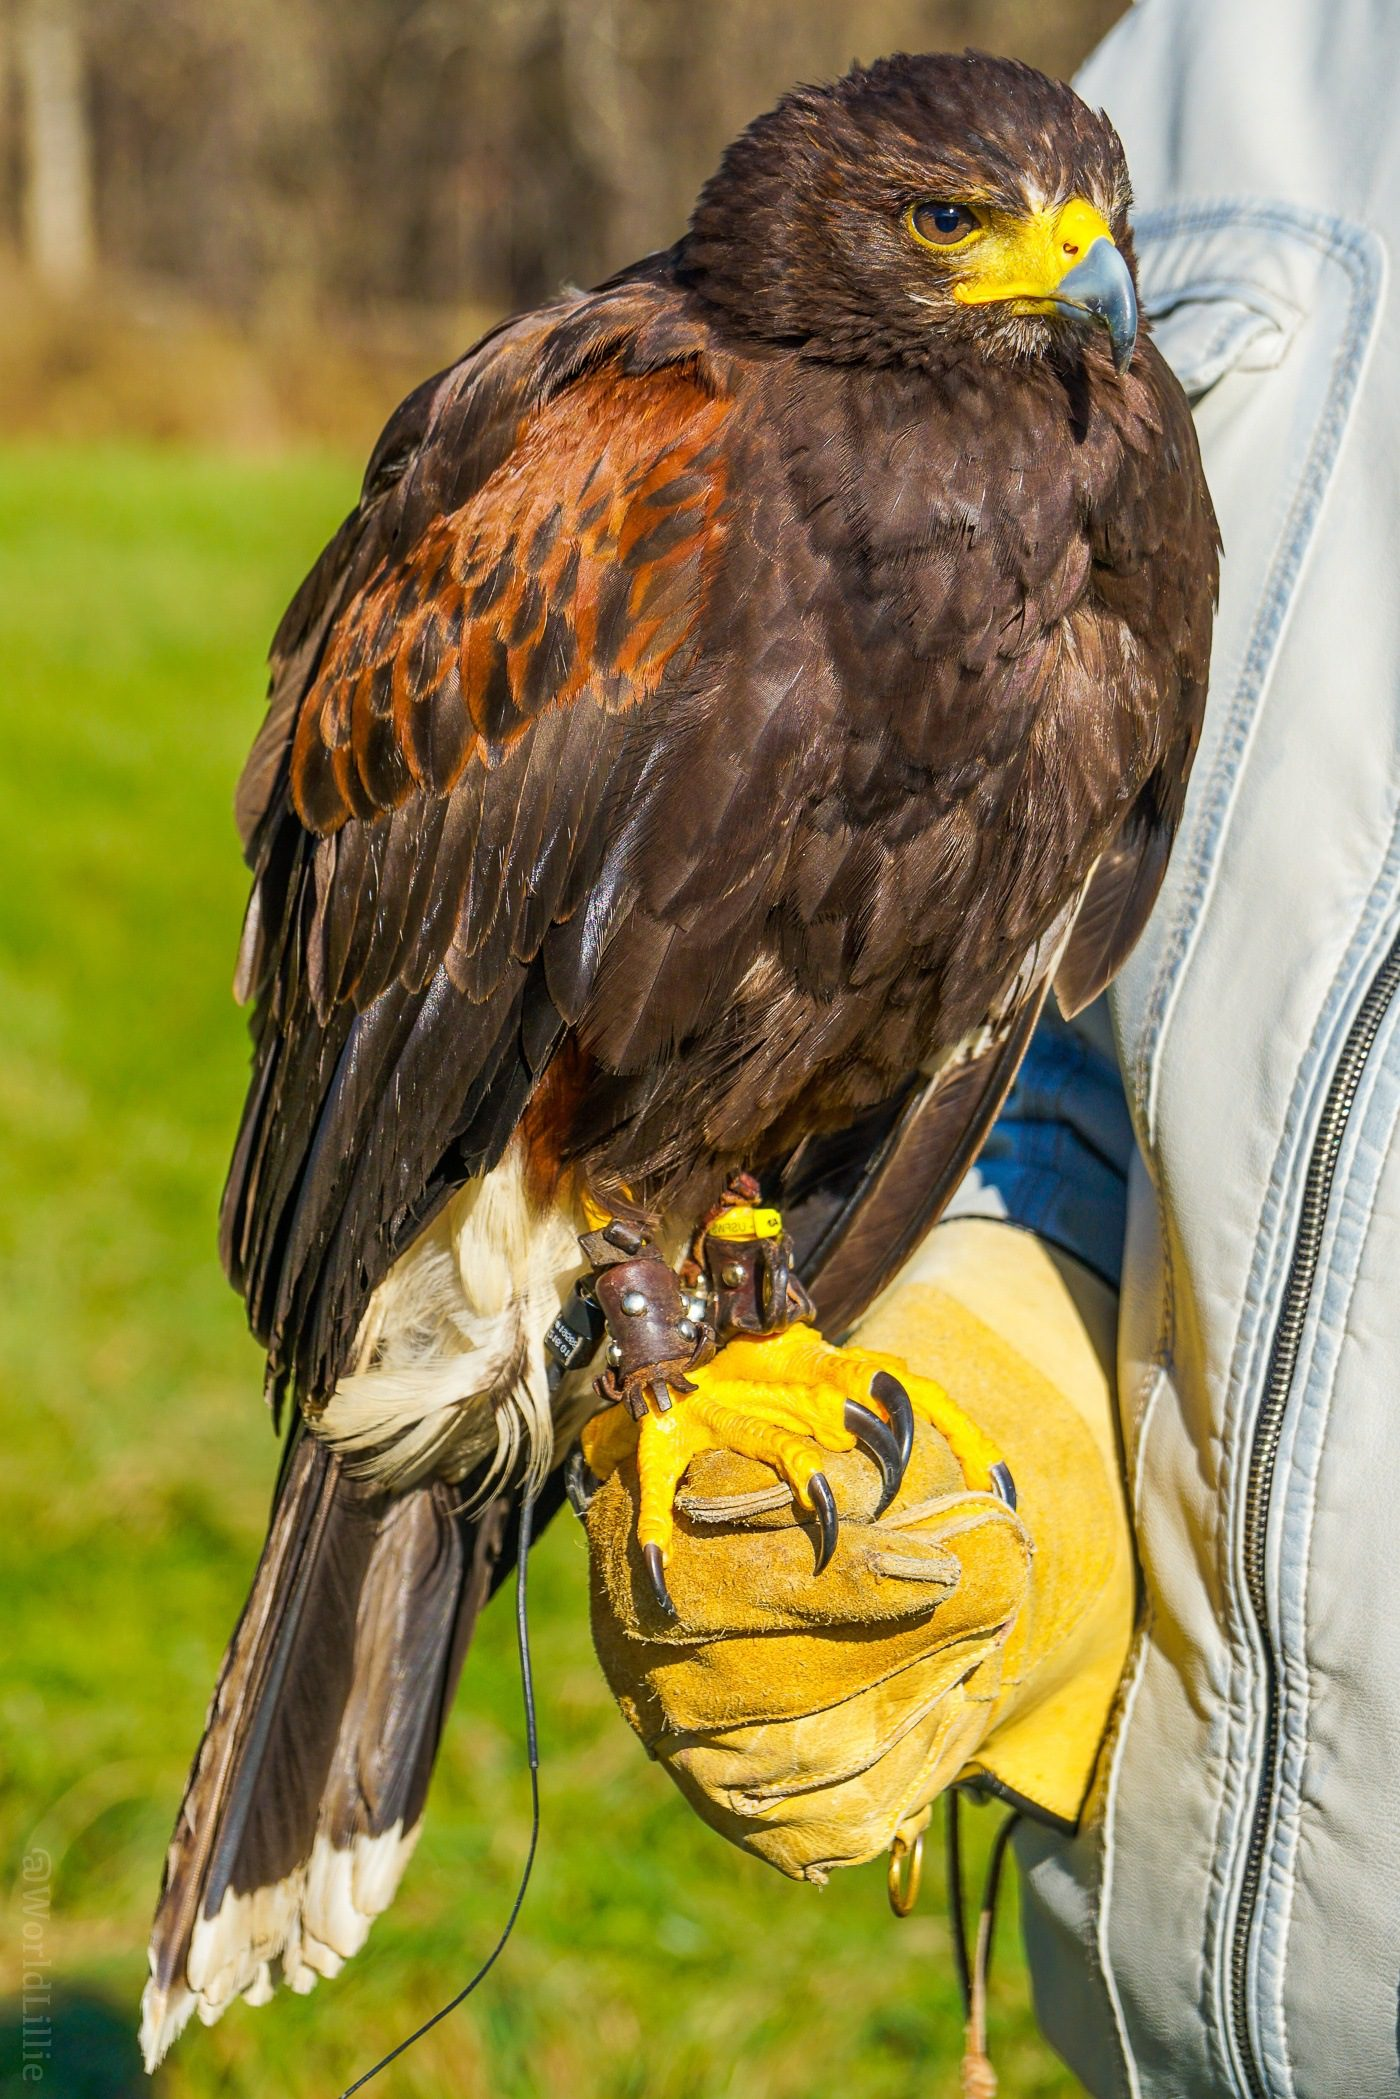 A Harris's Hawk! For a romantic New England getaway, or family travel fun, Woodstock, VT is a charming small town: Covered bridges, Billings Farm, Vermont skiing, and falconry!